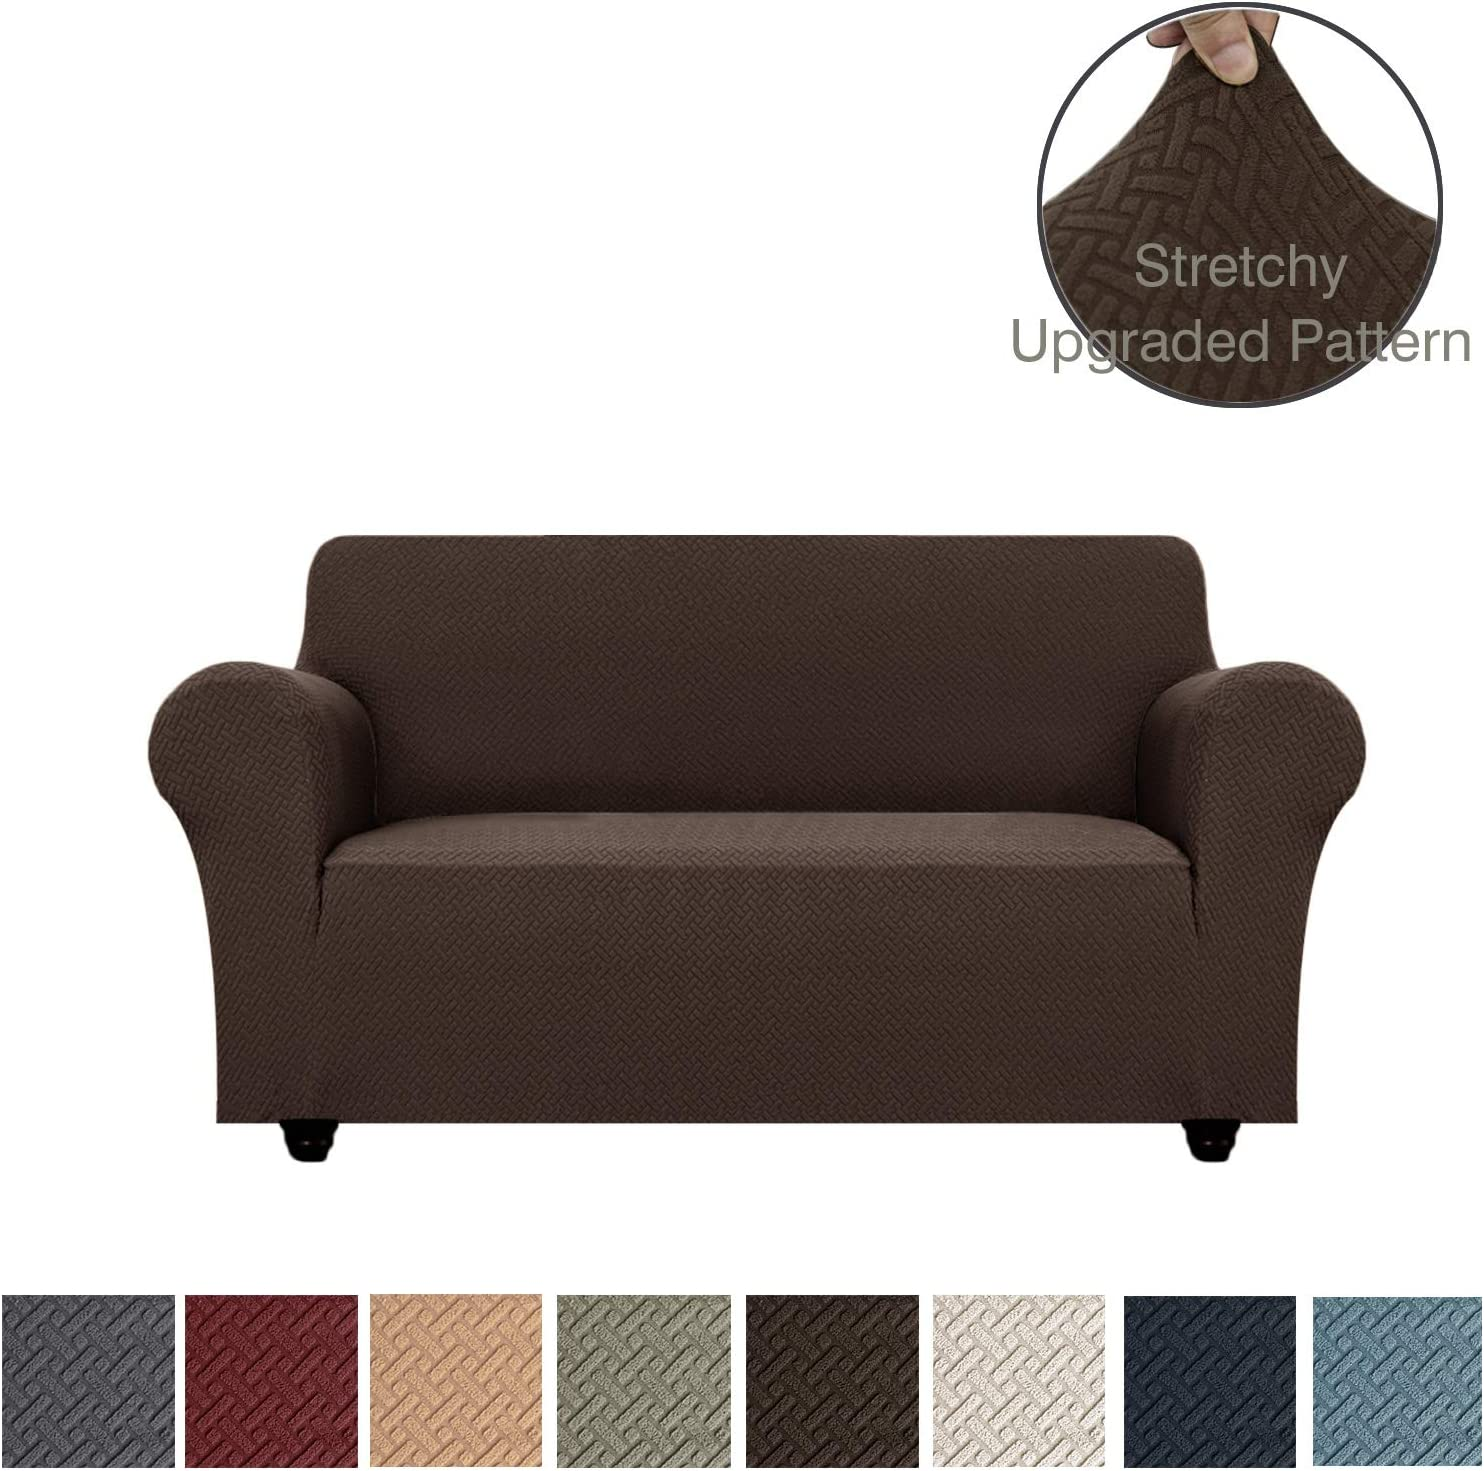 Obytex Stretch Loveseat Cover Polyester and Spandex Upgrade Pattern Couch Covers Dog Cat Pet Slipcovers Furniture Protectors,Machine Washable (Loveseat, Brown)